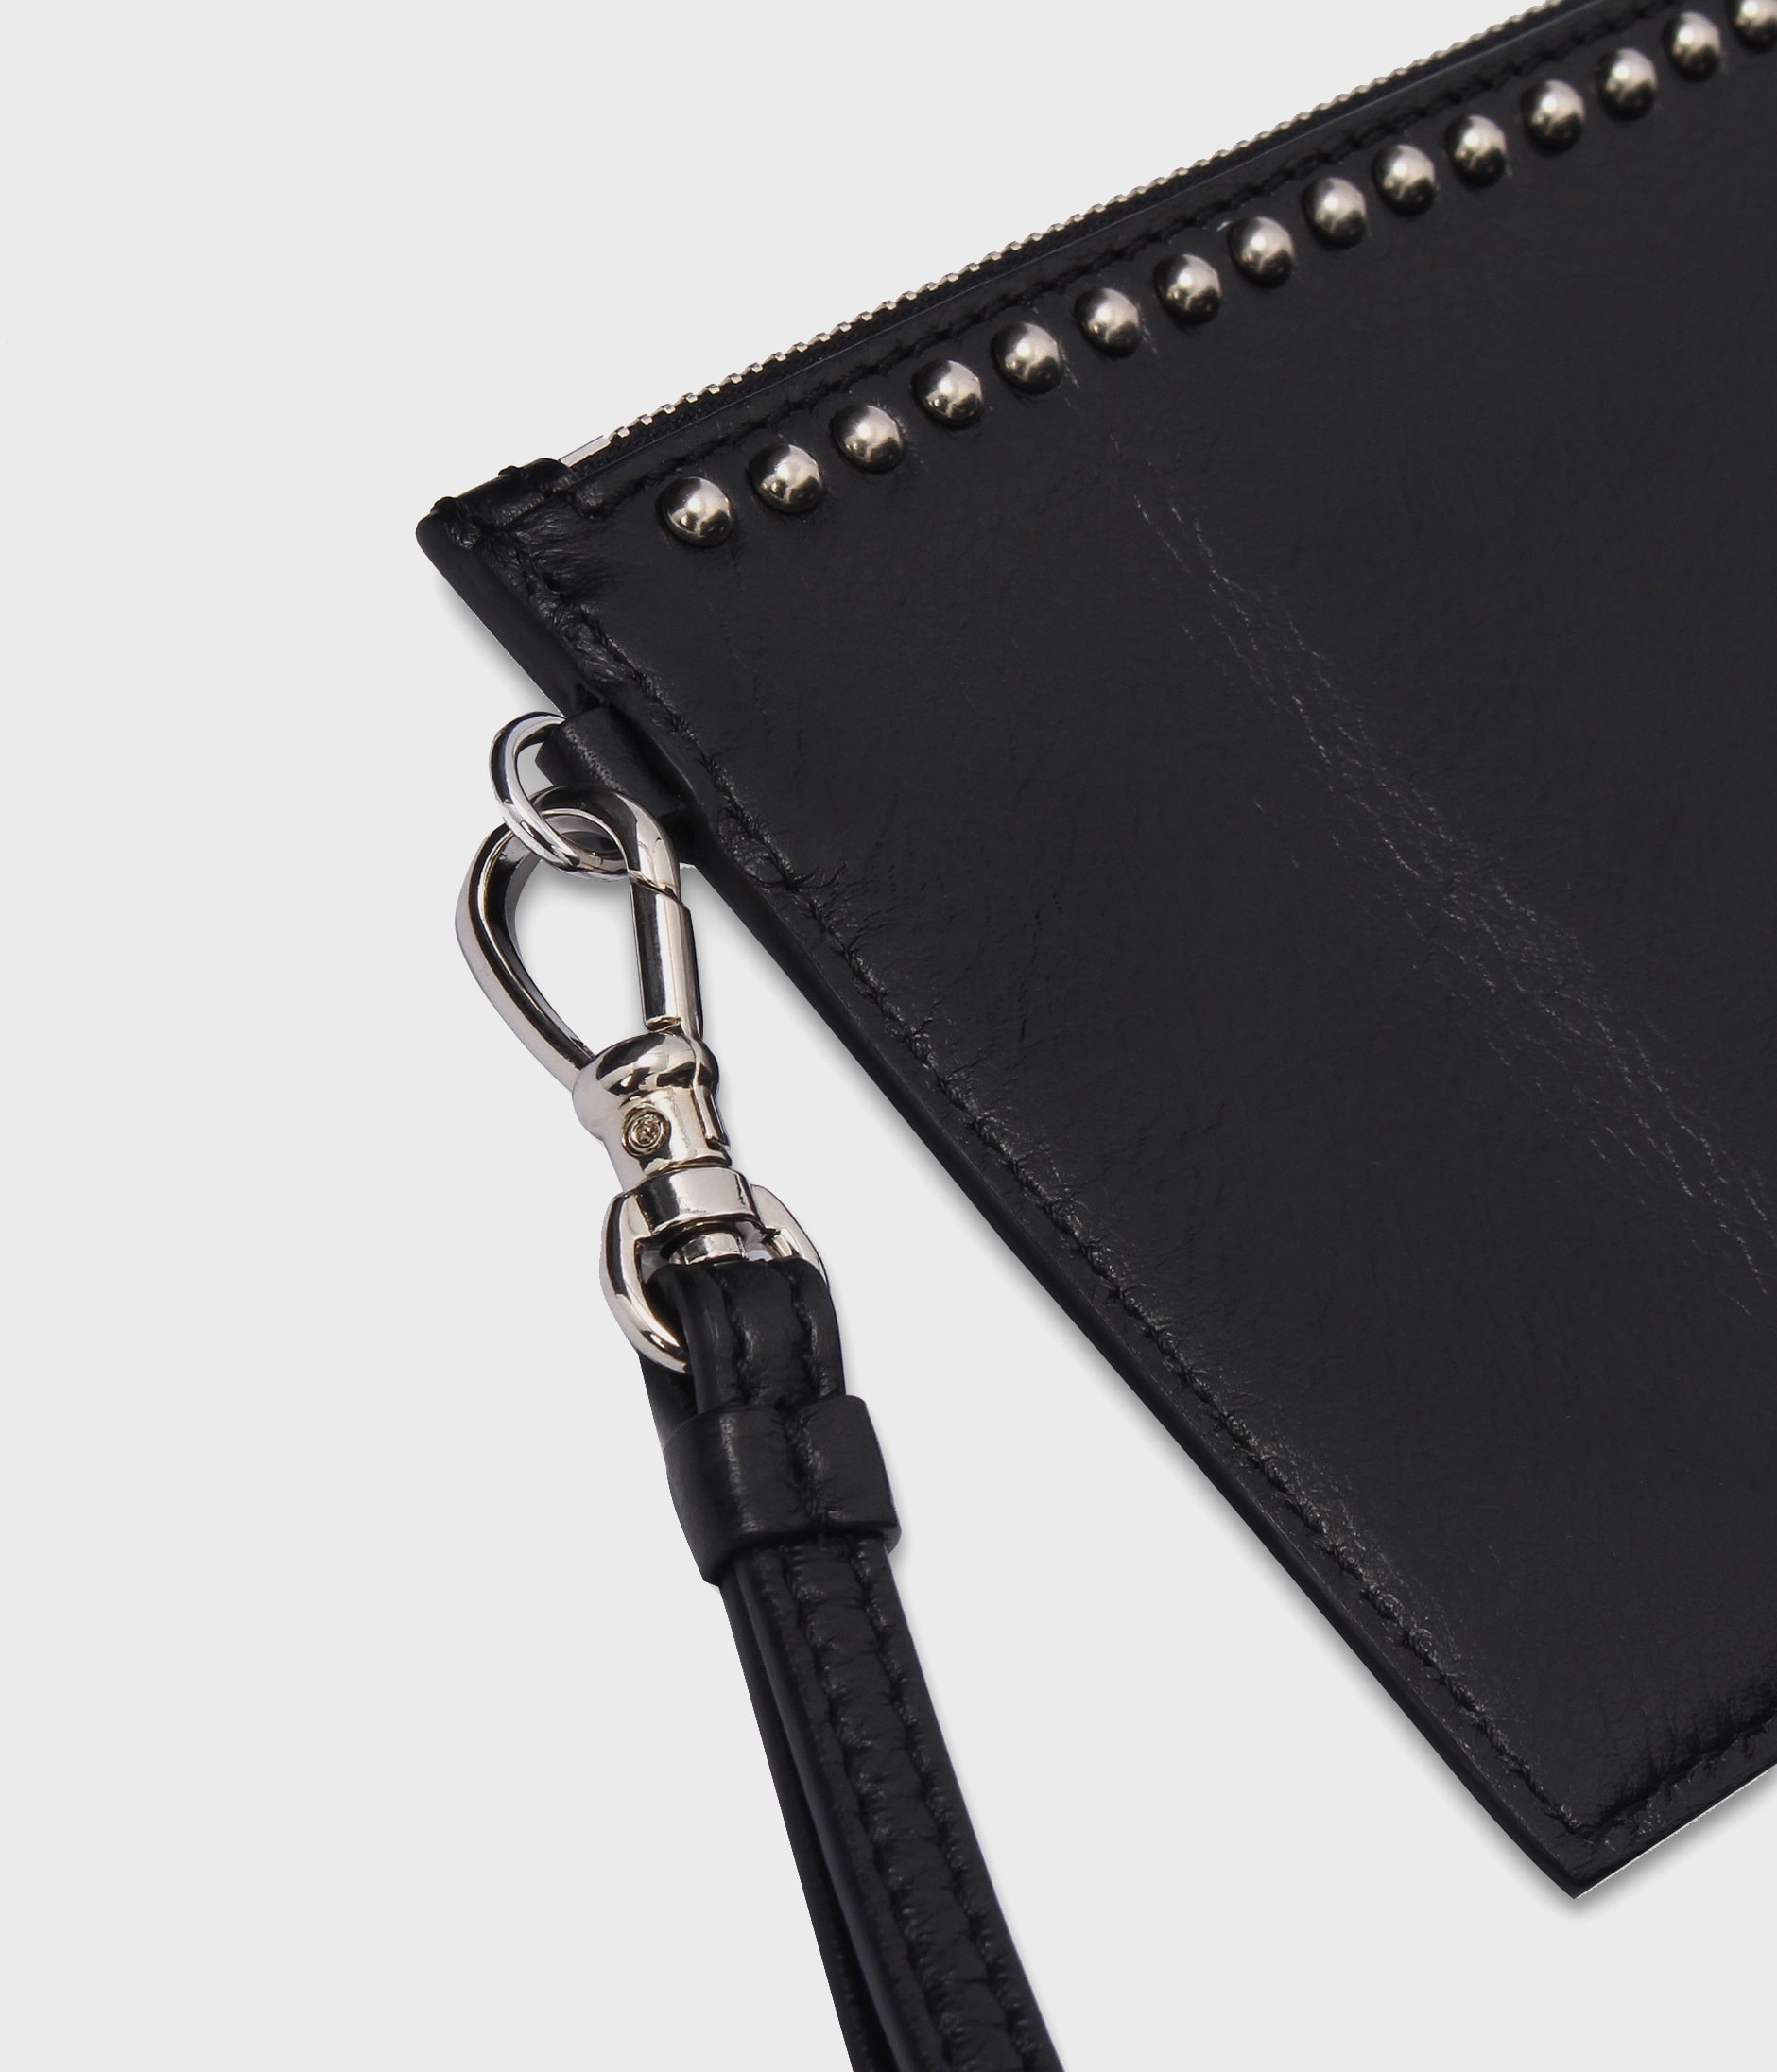 TRAVEL WALLET WITH STUDS 詳細画像 BLACK 7